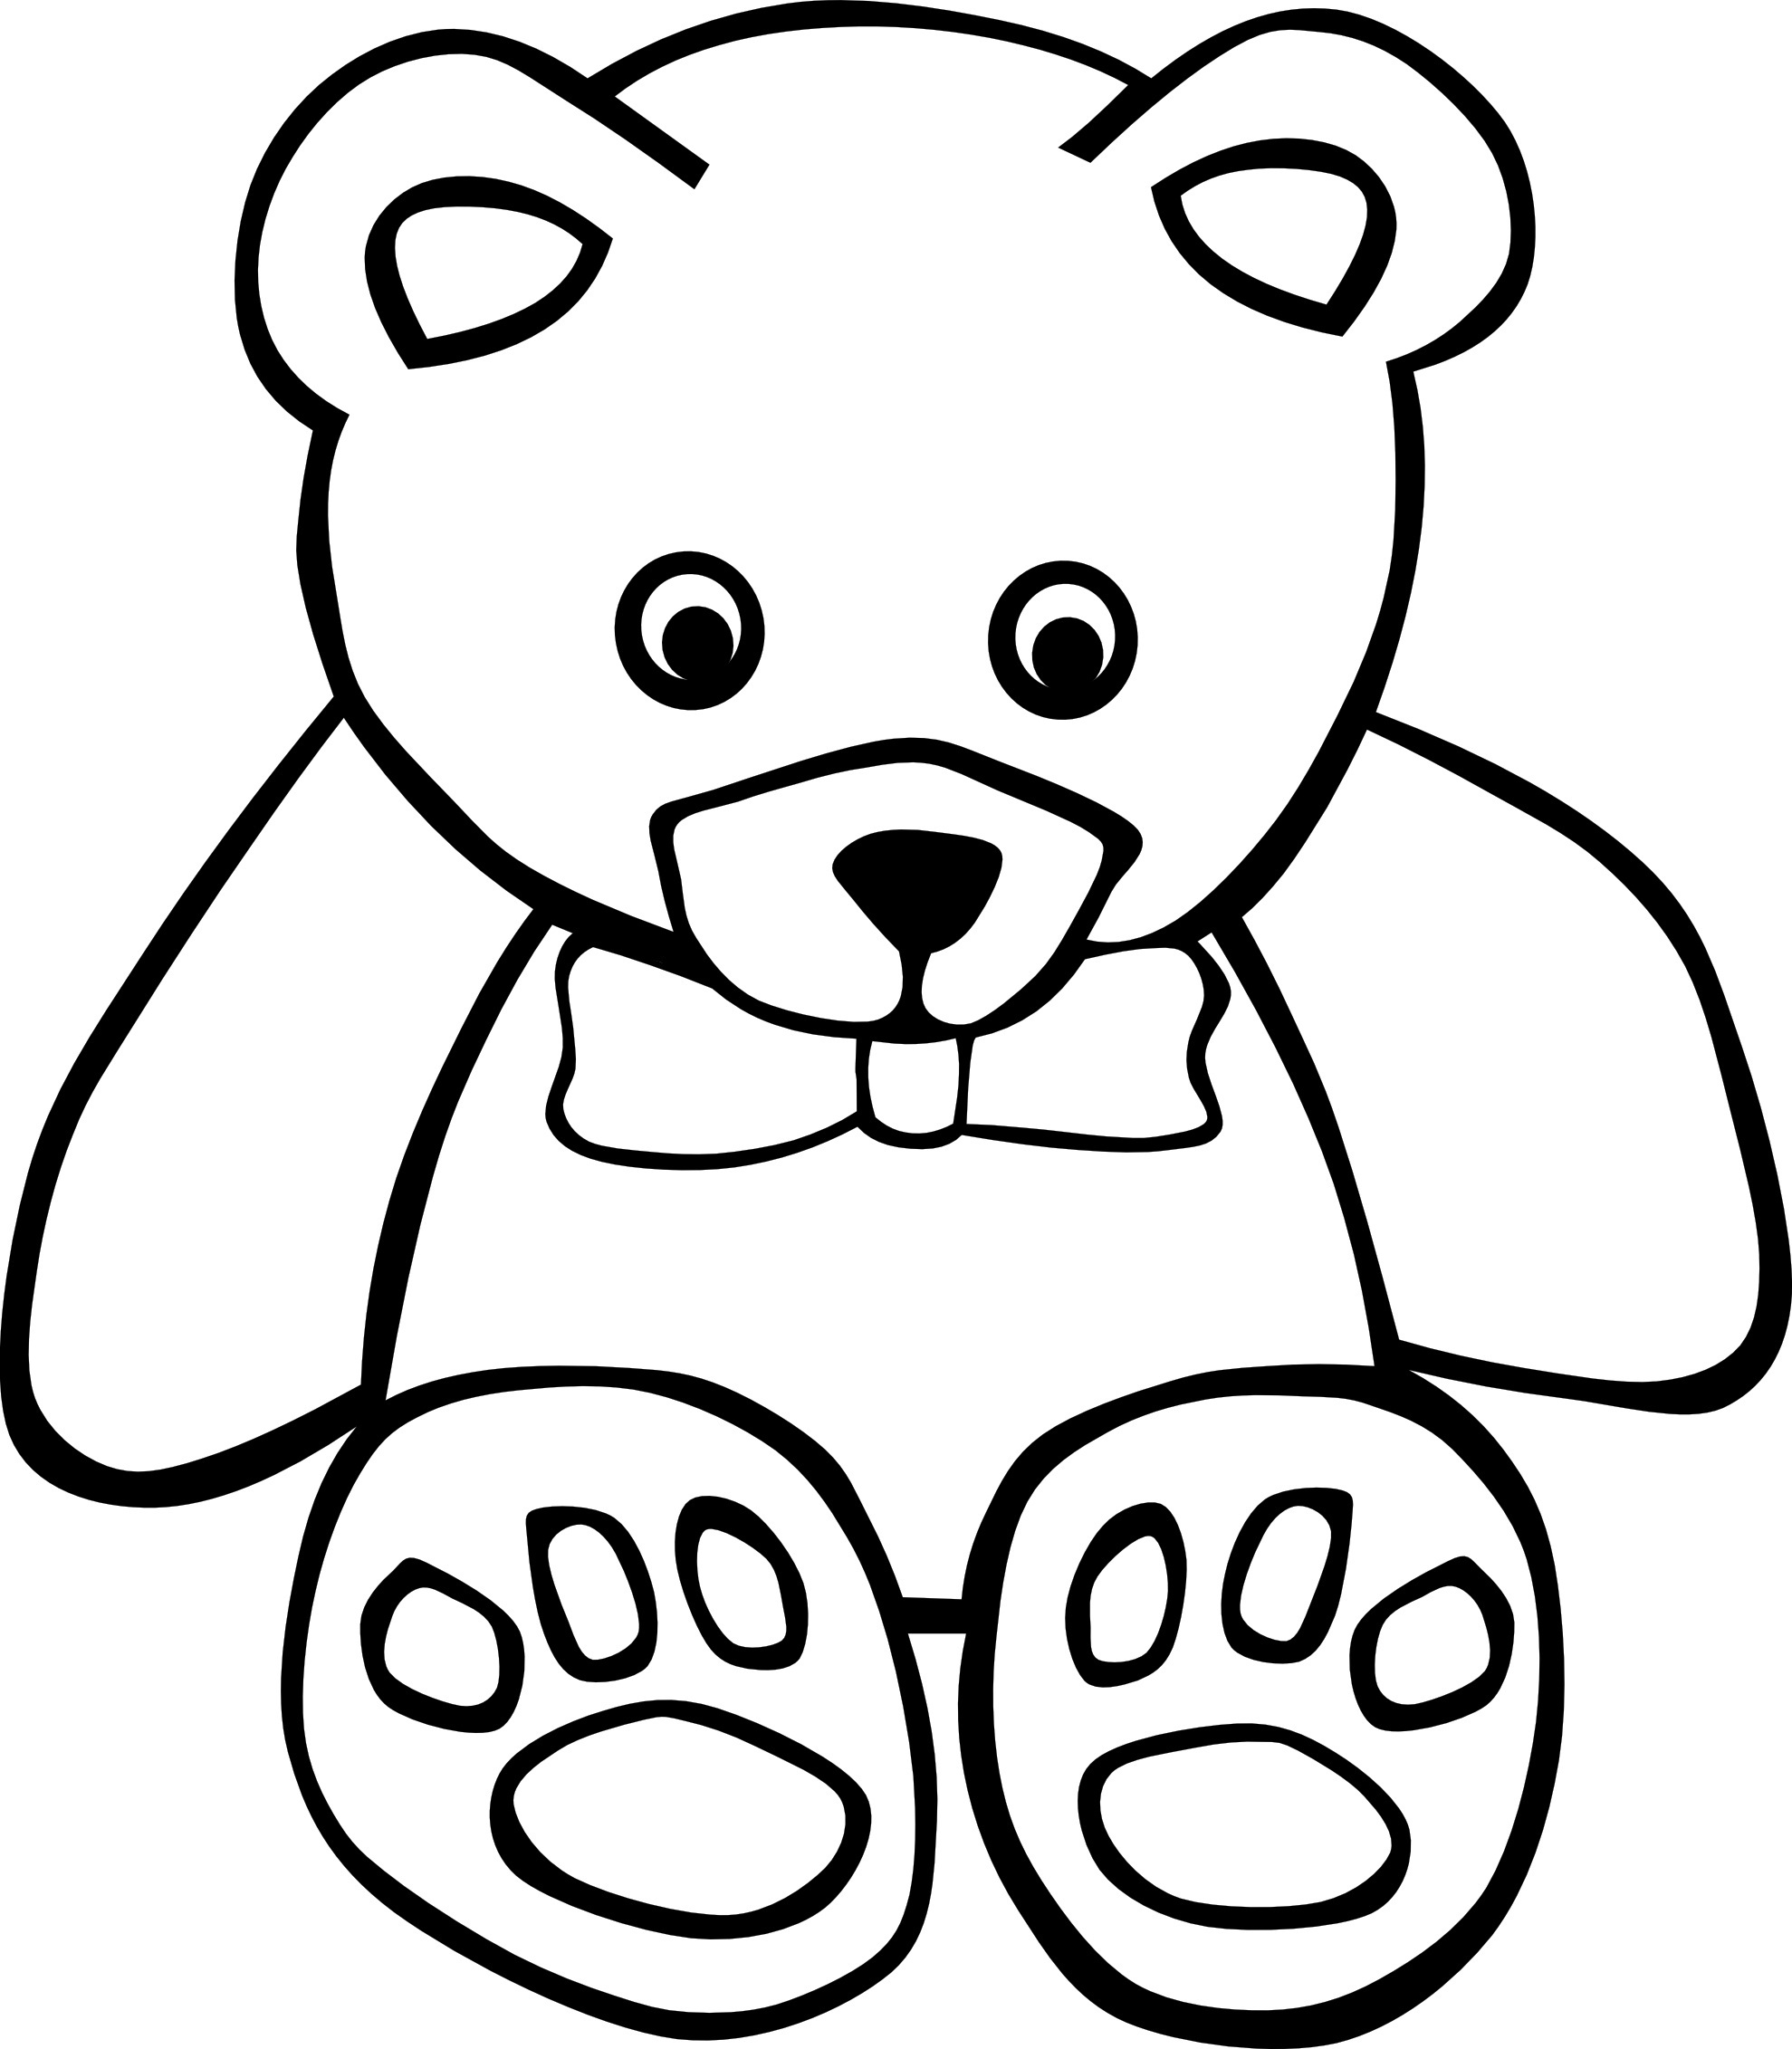 coloring picture of a bear free printable teddy bear coloring pages for kids of picture a coloring bear